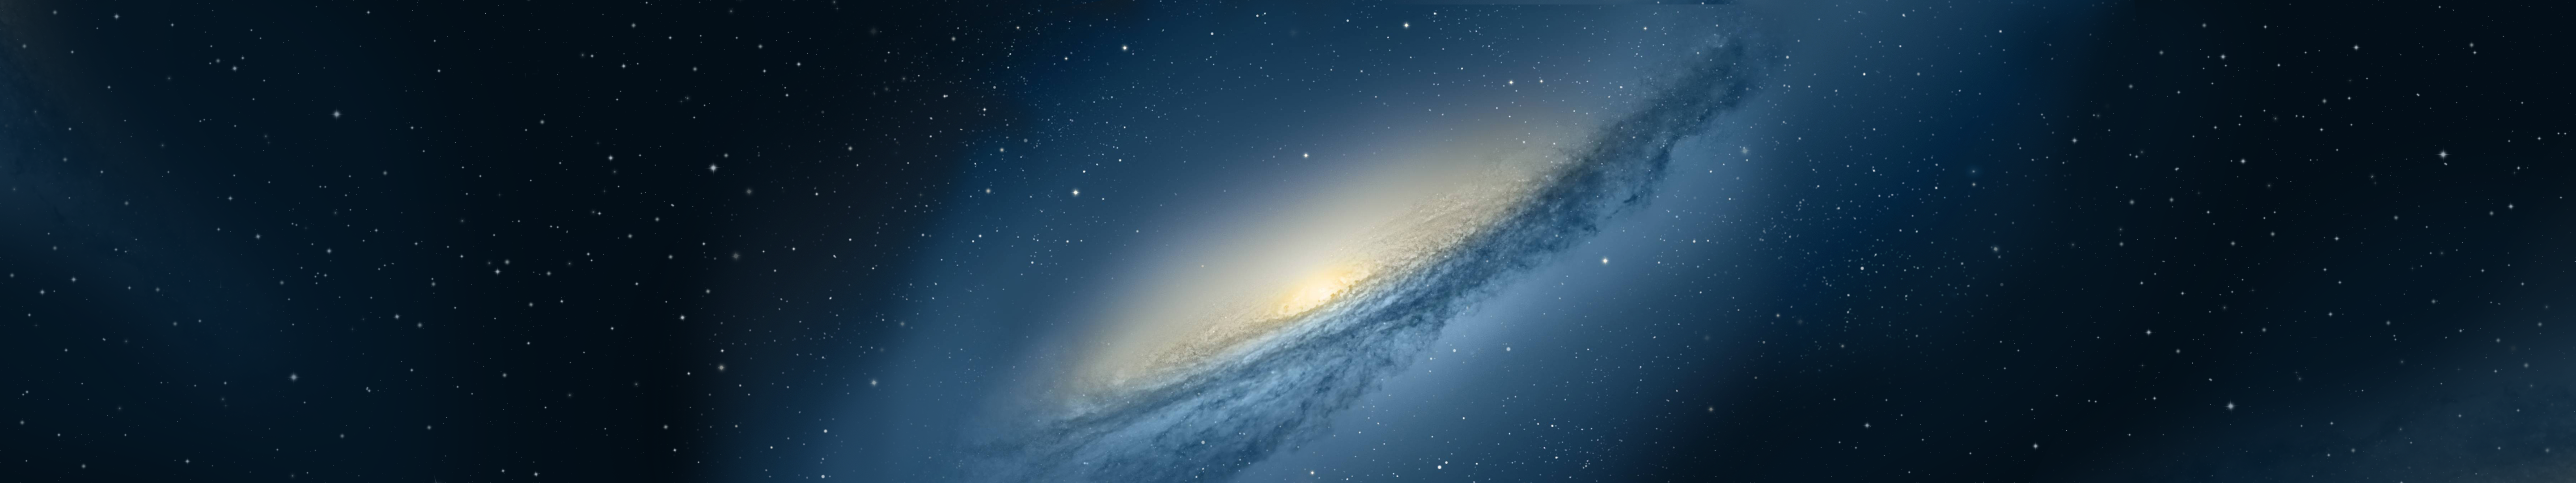 galaxy with triple monitor support by drojden customization wallpaper 5760x1080